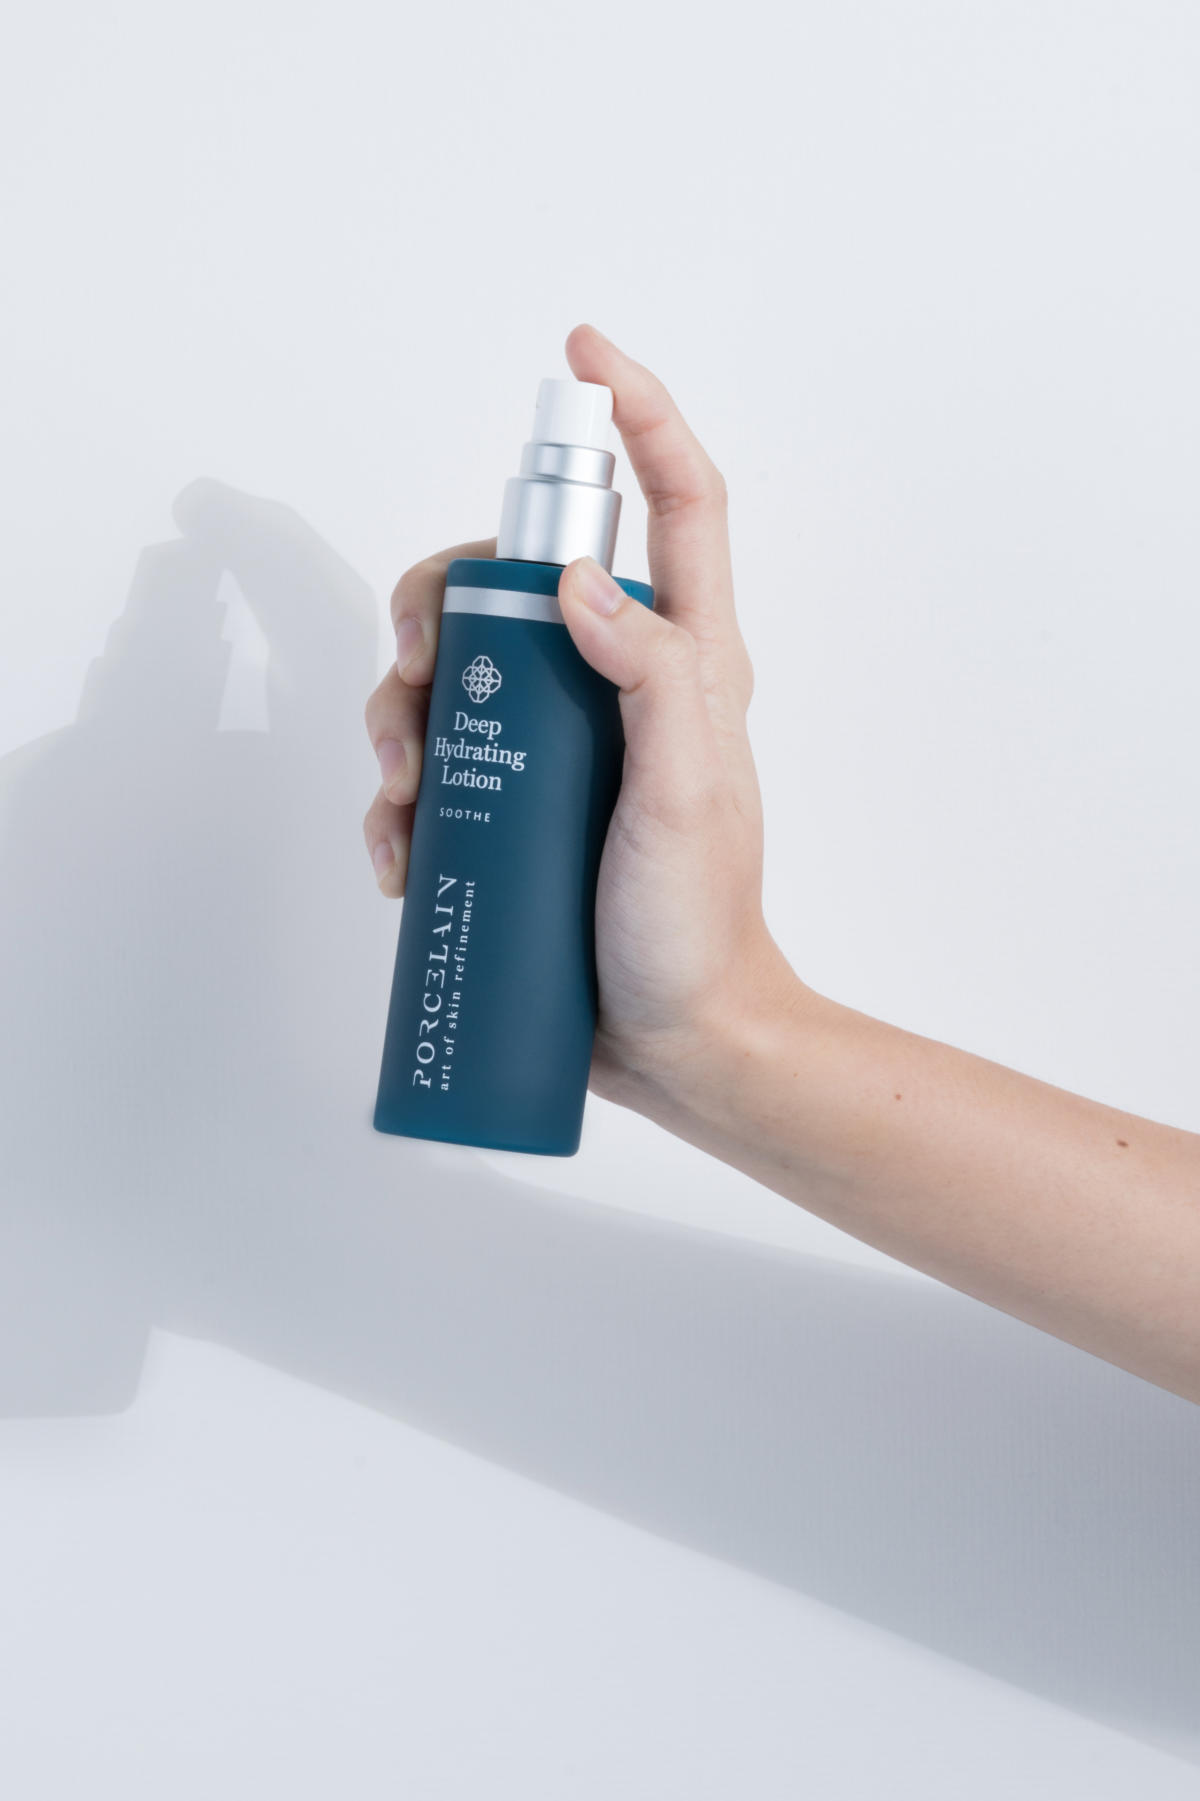 Mist Toners: Porcelain's Deep Hydrating Lotion is great for hydration in summer